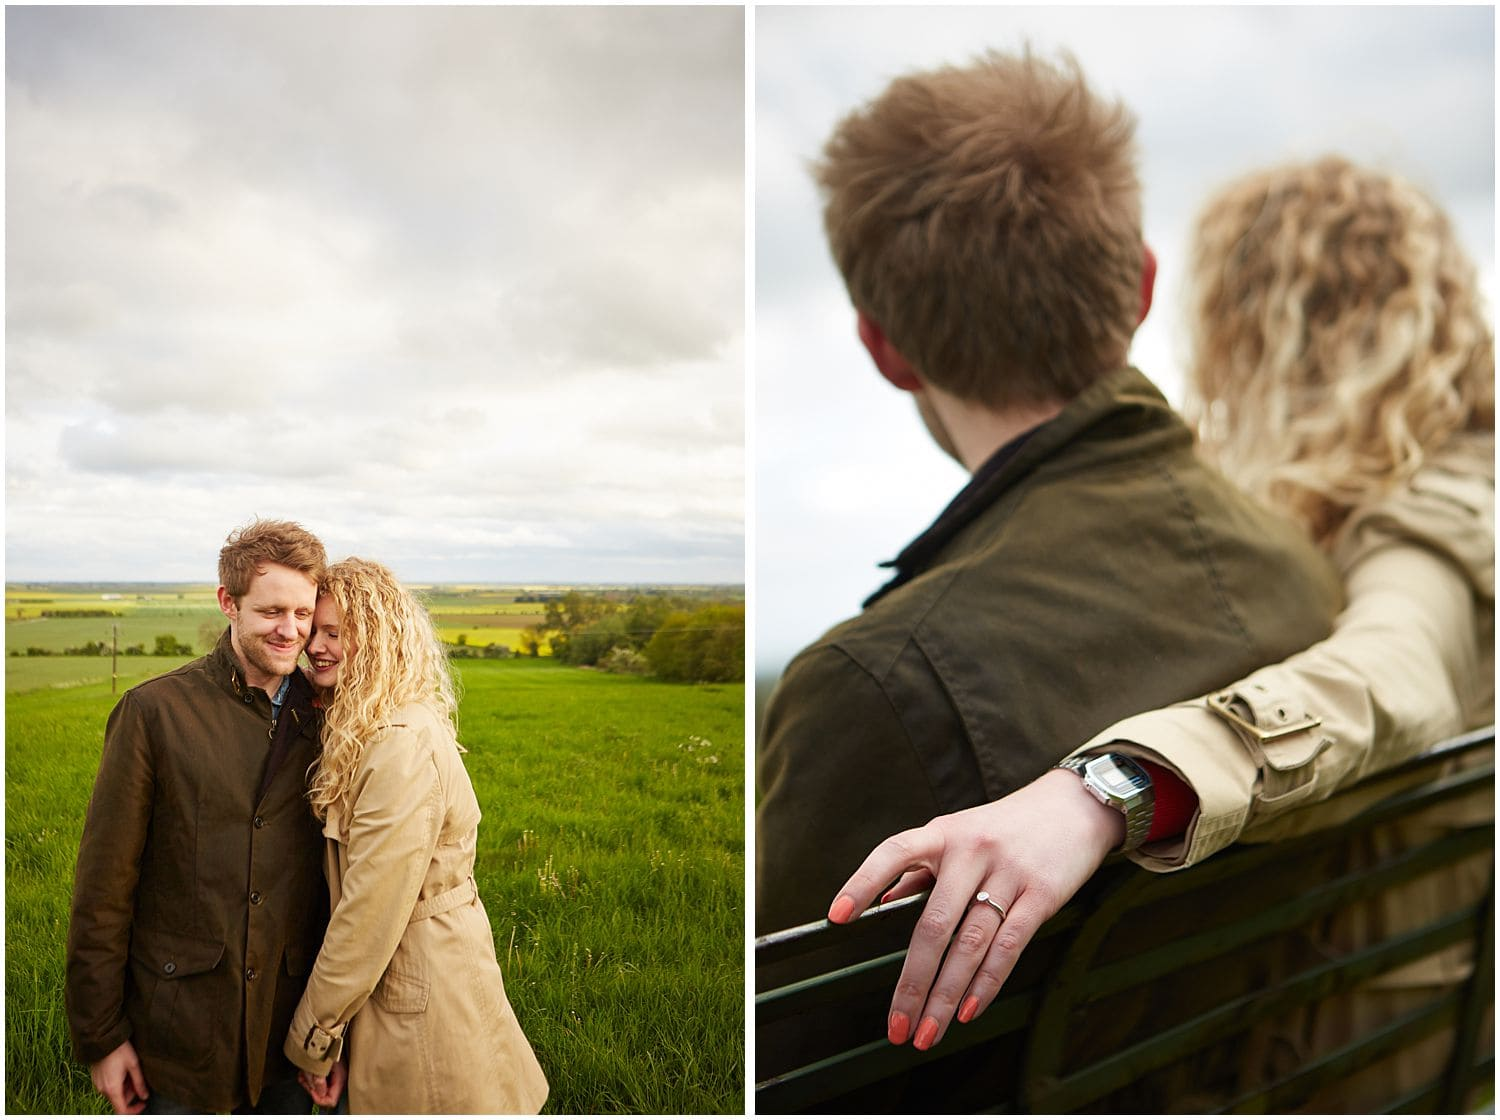 A couple smiling in the countryside during an engagement photoshoot